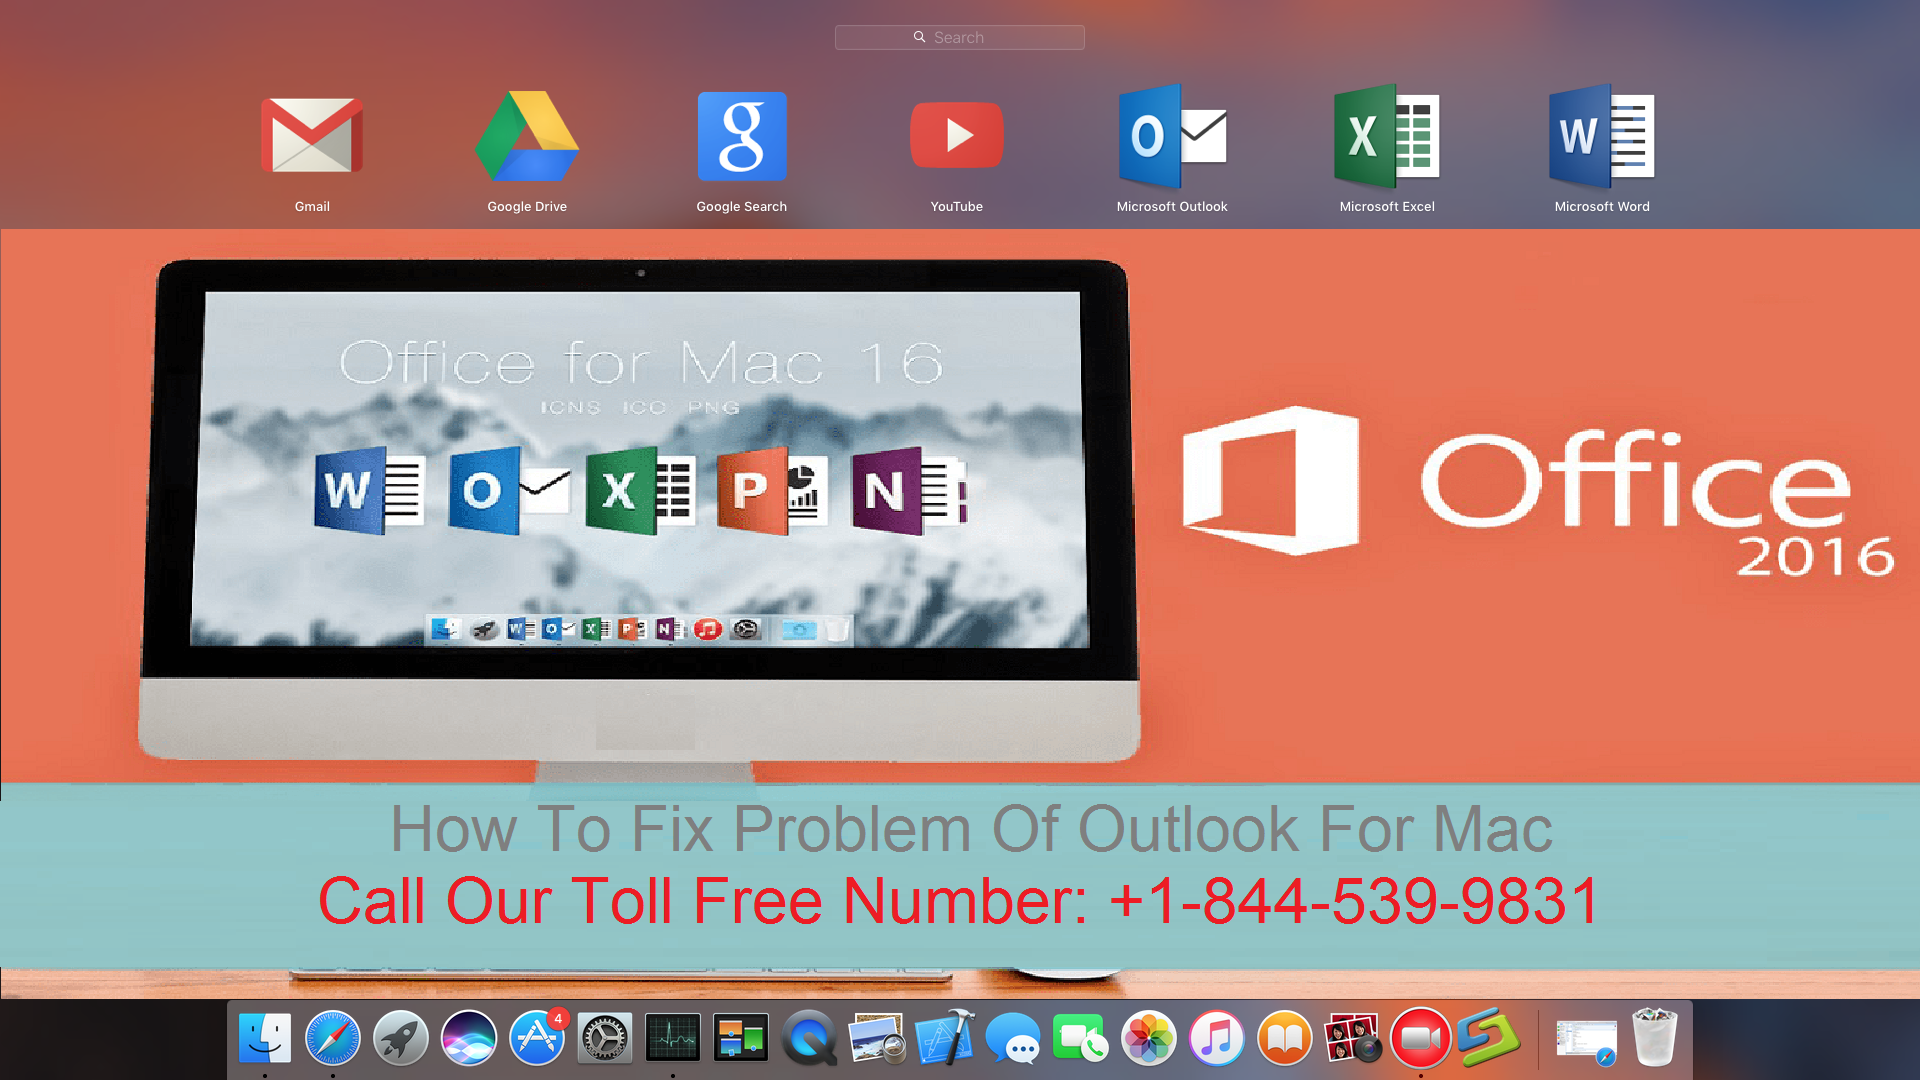 Problems Of Outlook For Mac & Their Solutions | Call +1-844